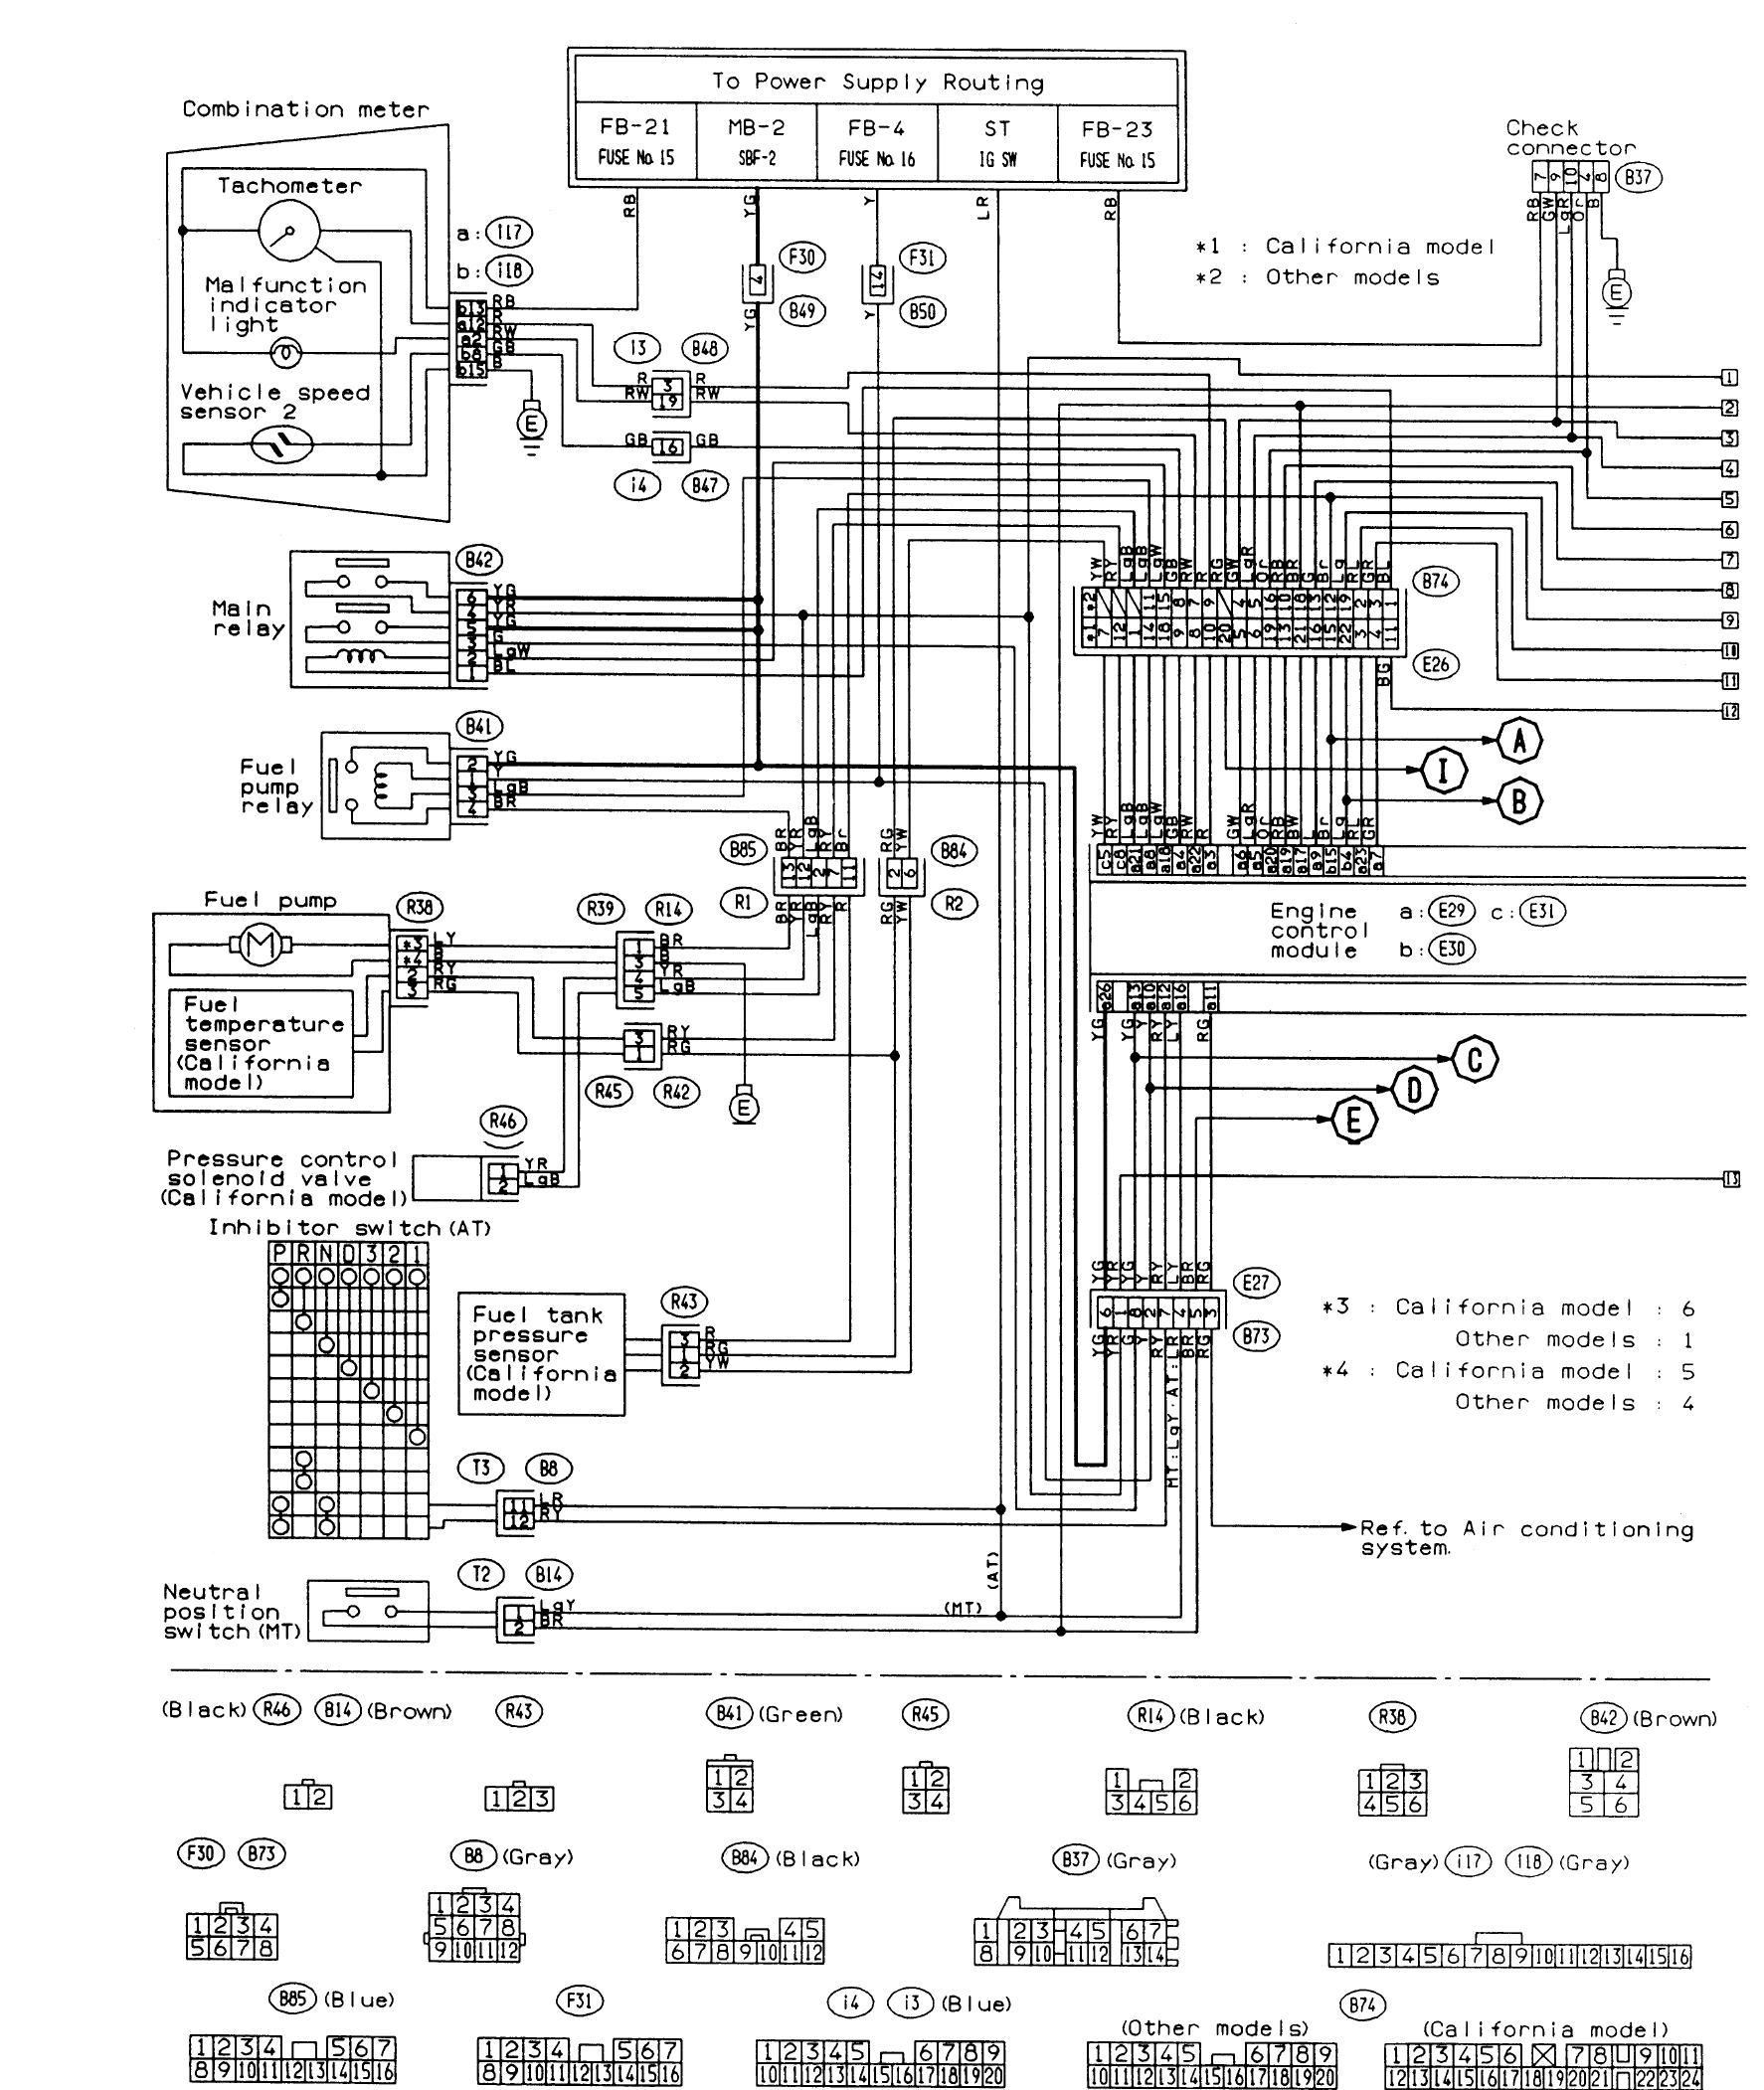 subaru ecu wiring diagram FUSlrCX 2003 subaru outback wiring diagram 2003 subaru outback engine panasonic cq-c5301u wiring diagram at bayanpartner.co